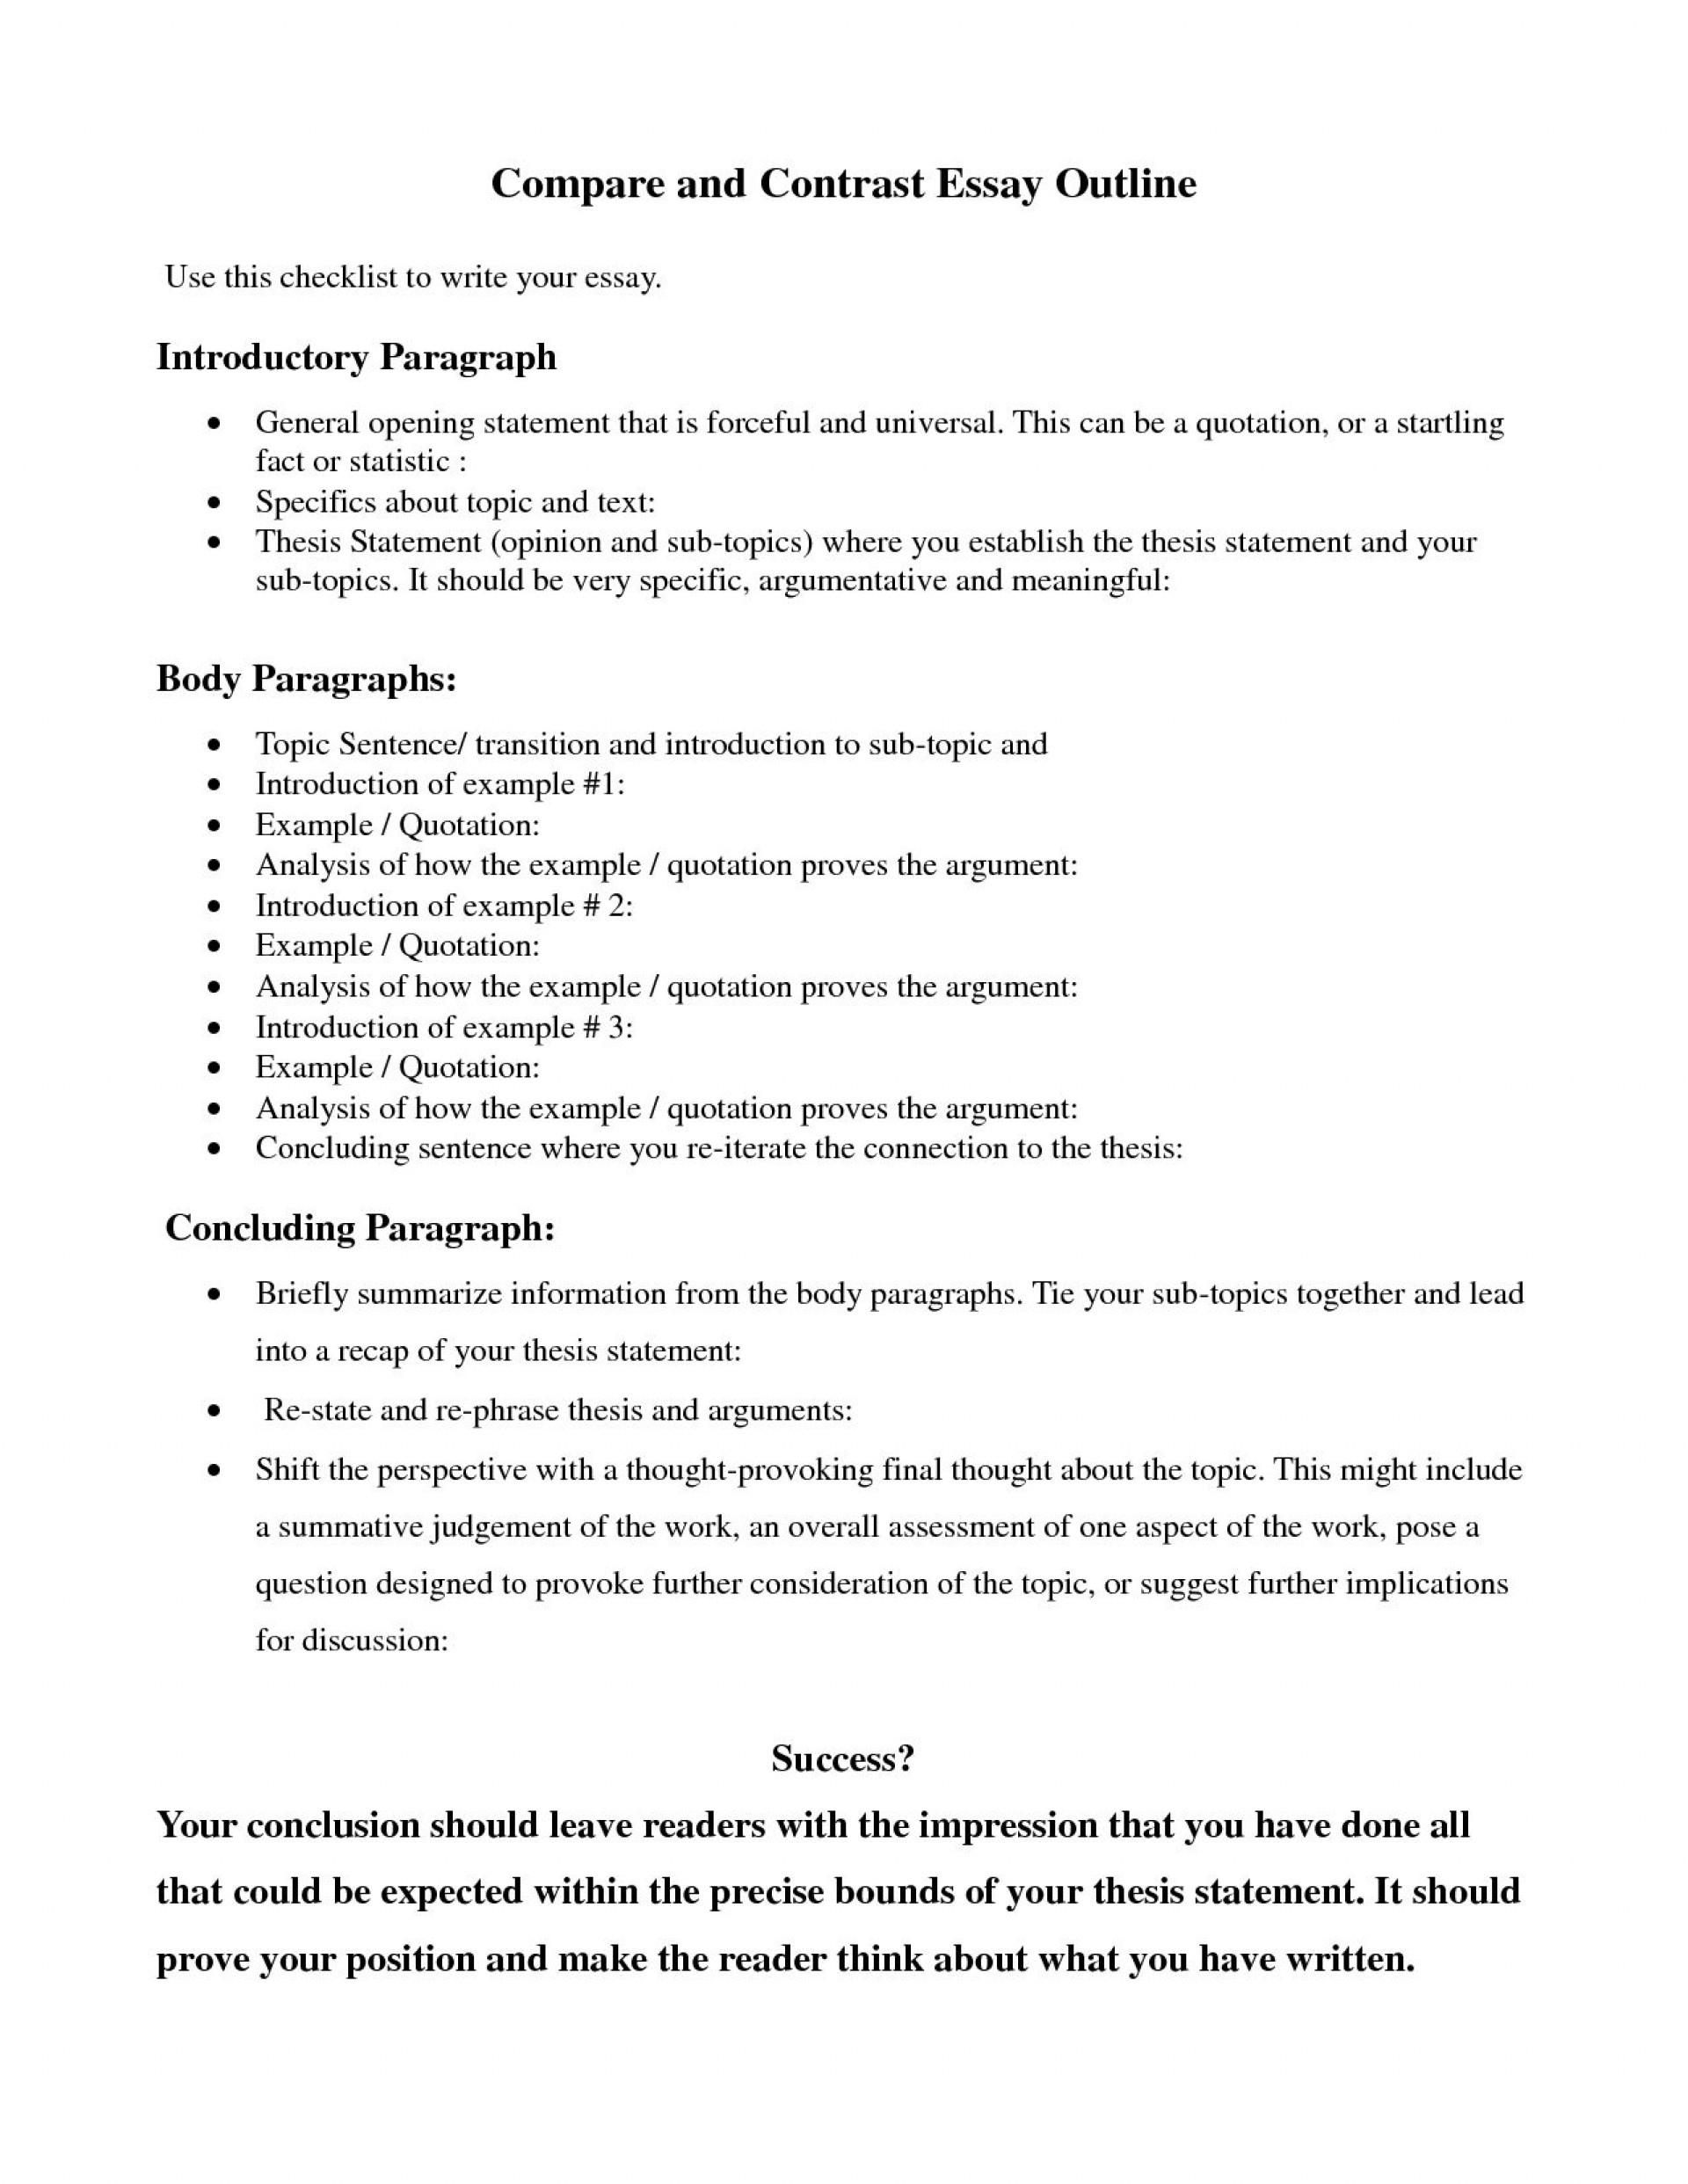 007 Astounding Compare And Contrast Essay Example College High Definition  For Topic Outline1920